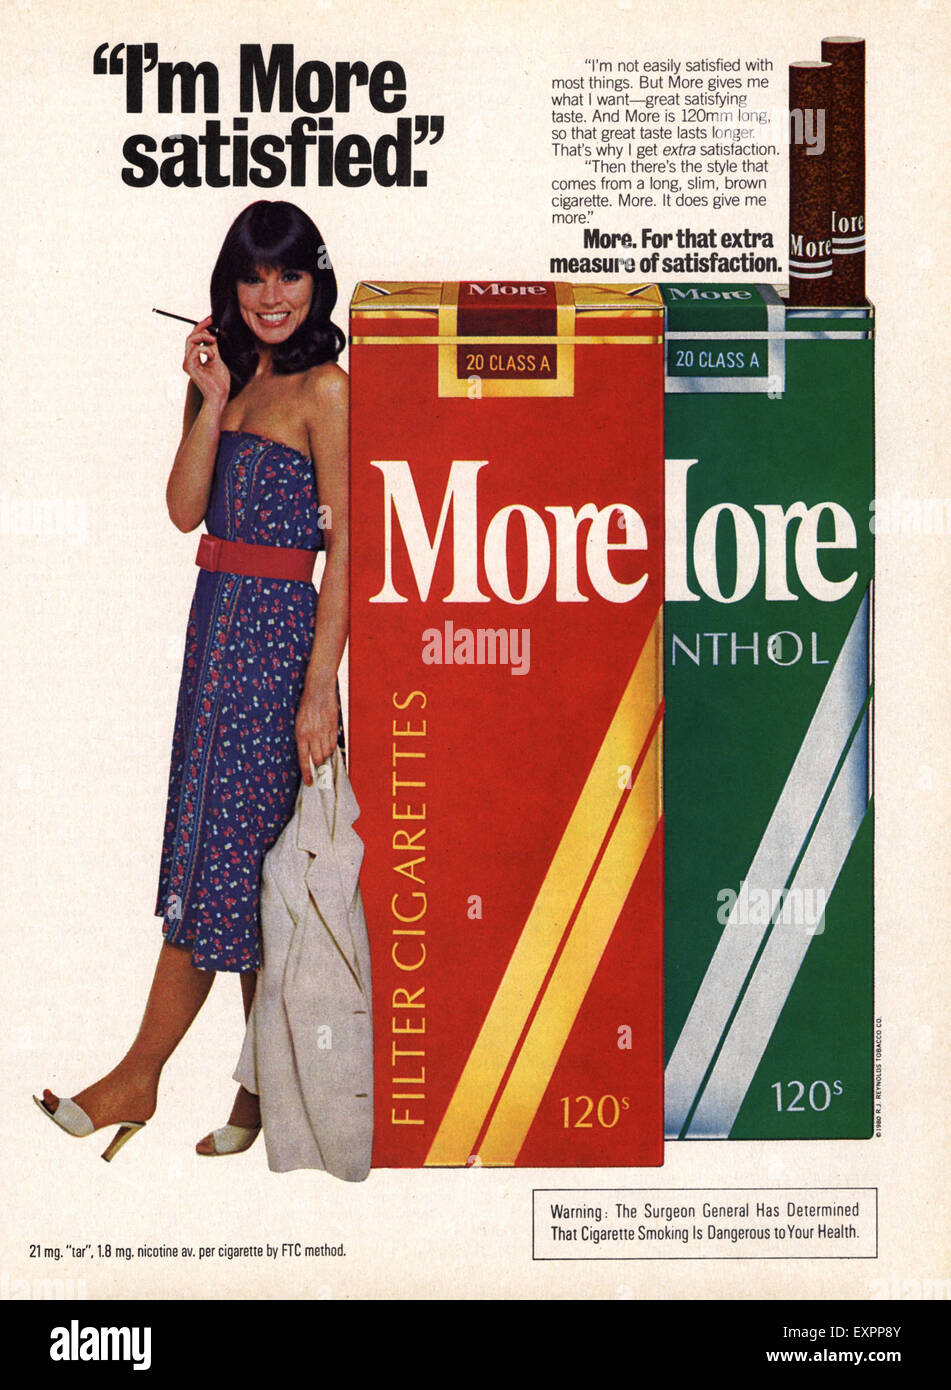 More Magazine November 2014 Issue: 1970s Woman Advert Stock Photos & 1970s Woman Advert Stock